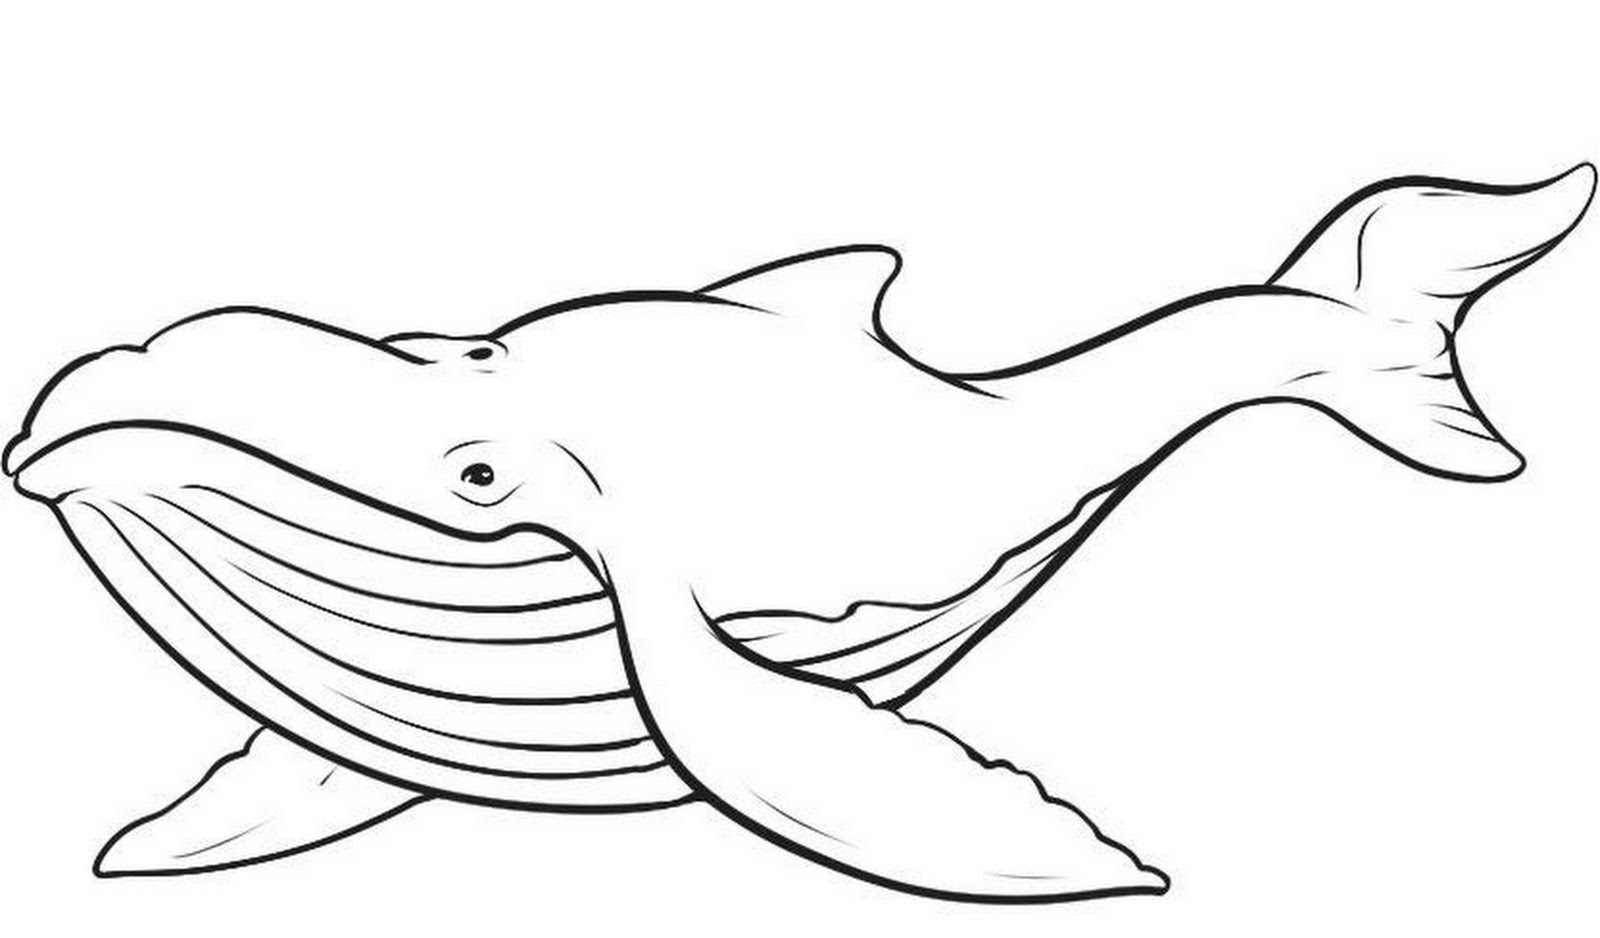 Sperm Whale clipart #20, Download drawings